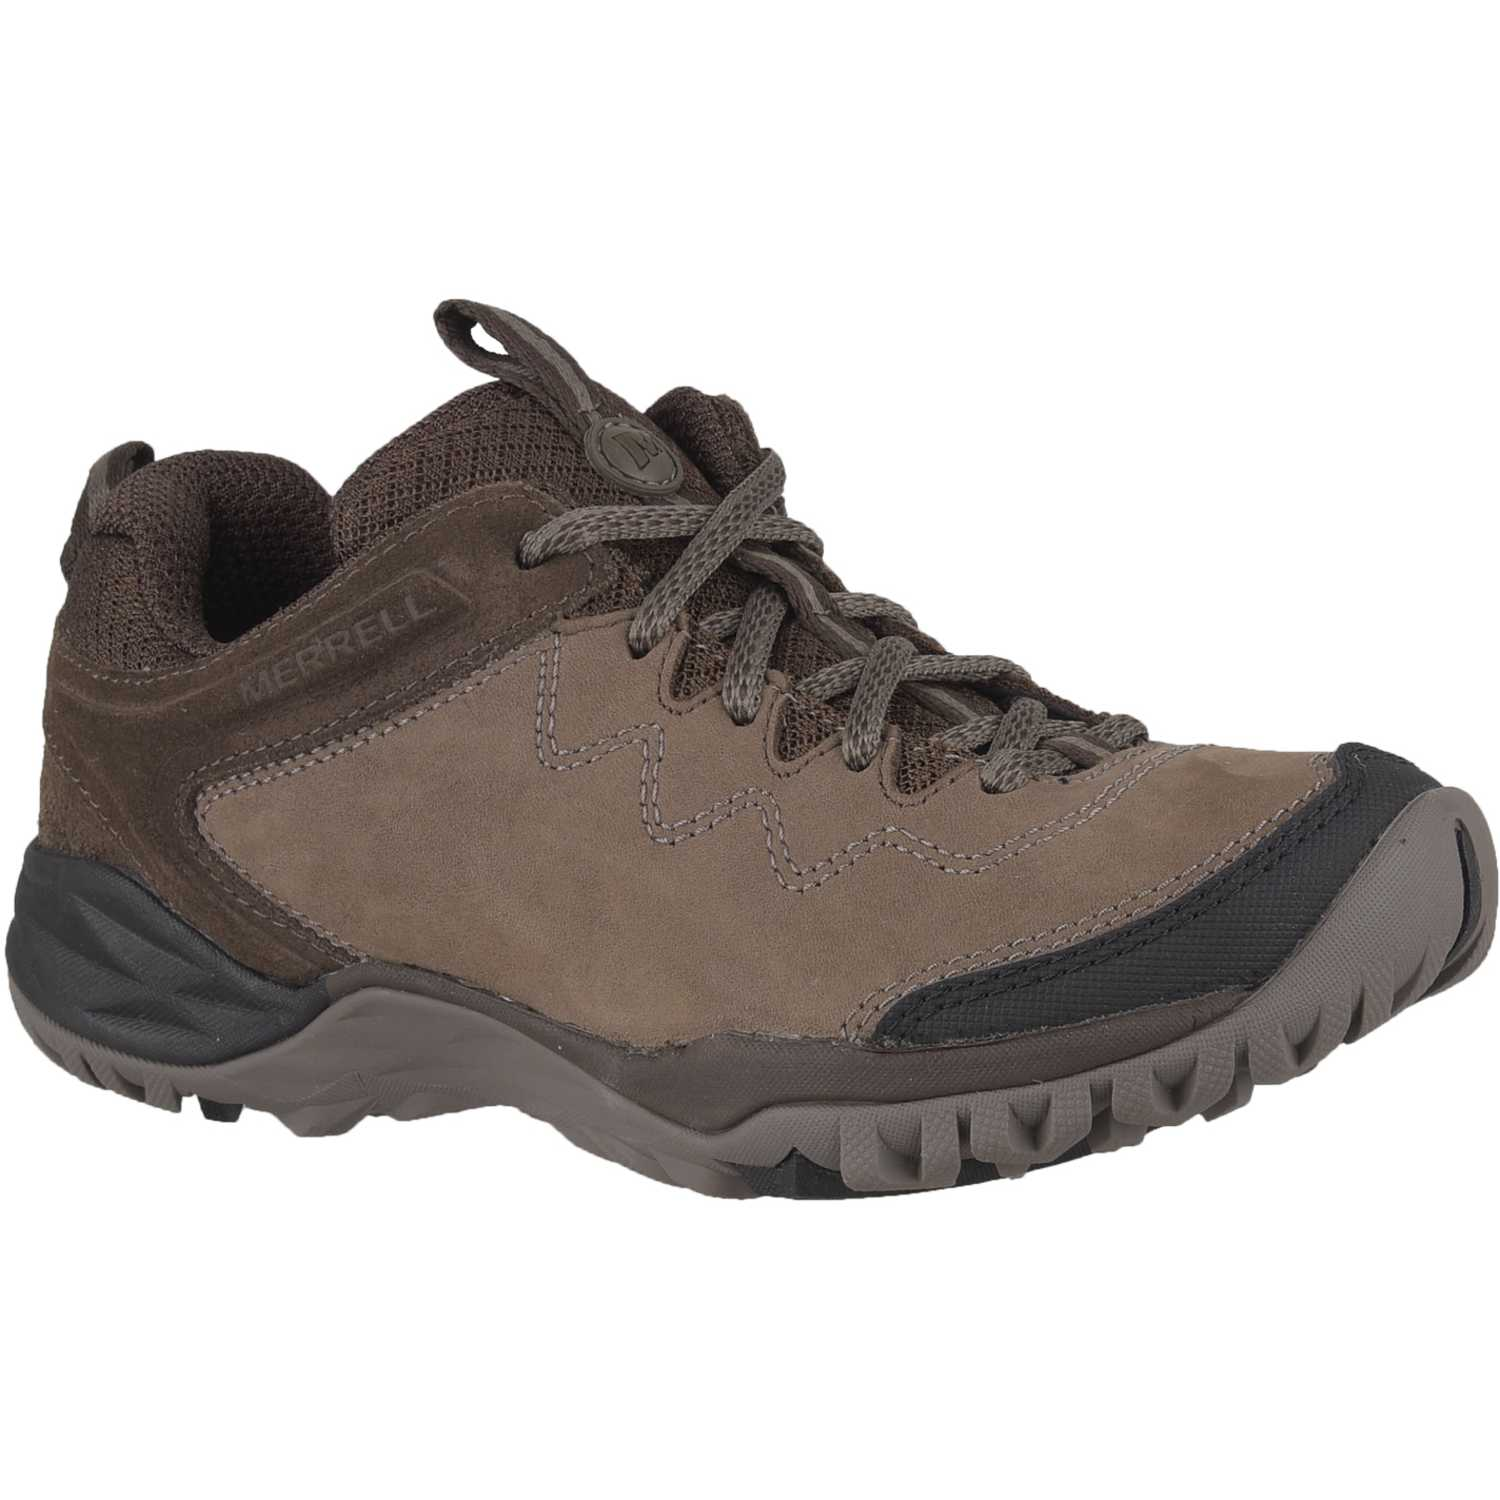 Merrell siren traveller q2 Marron Trail Running